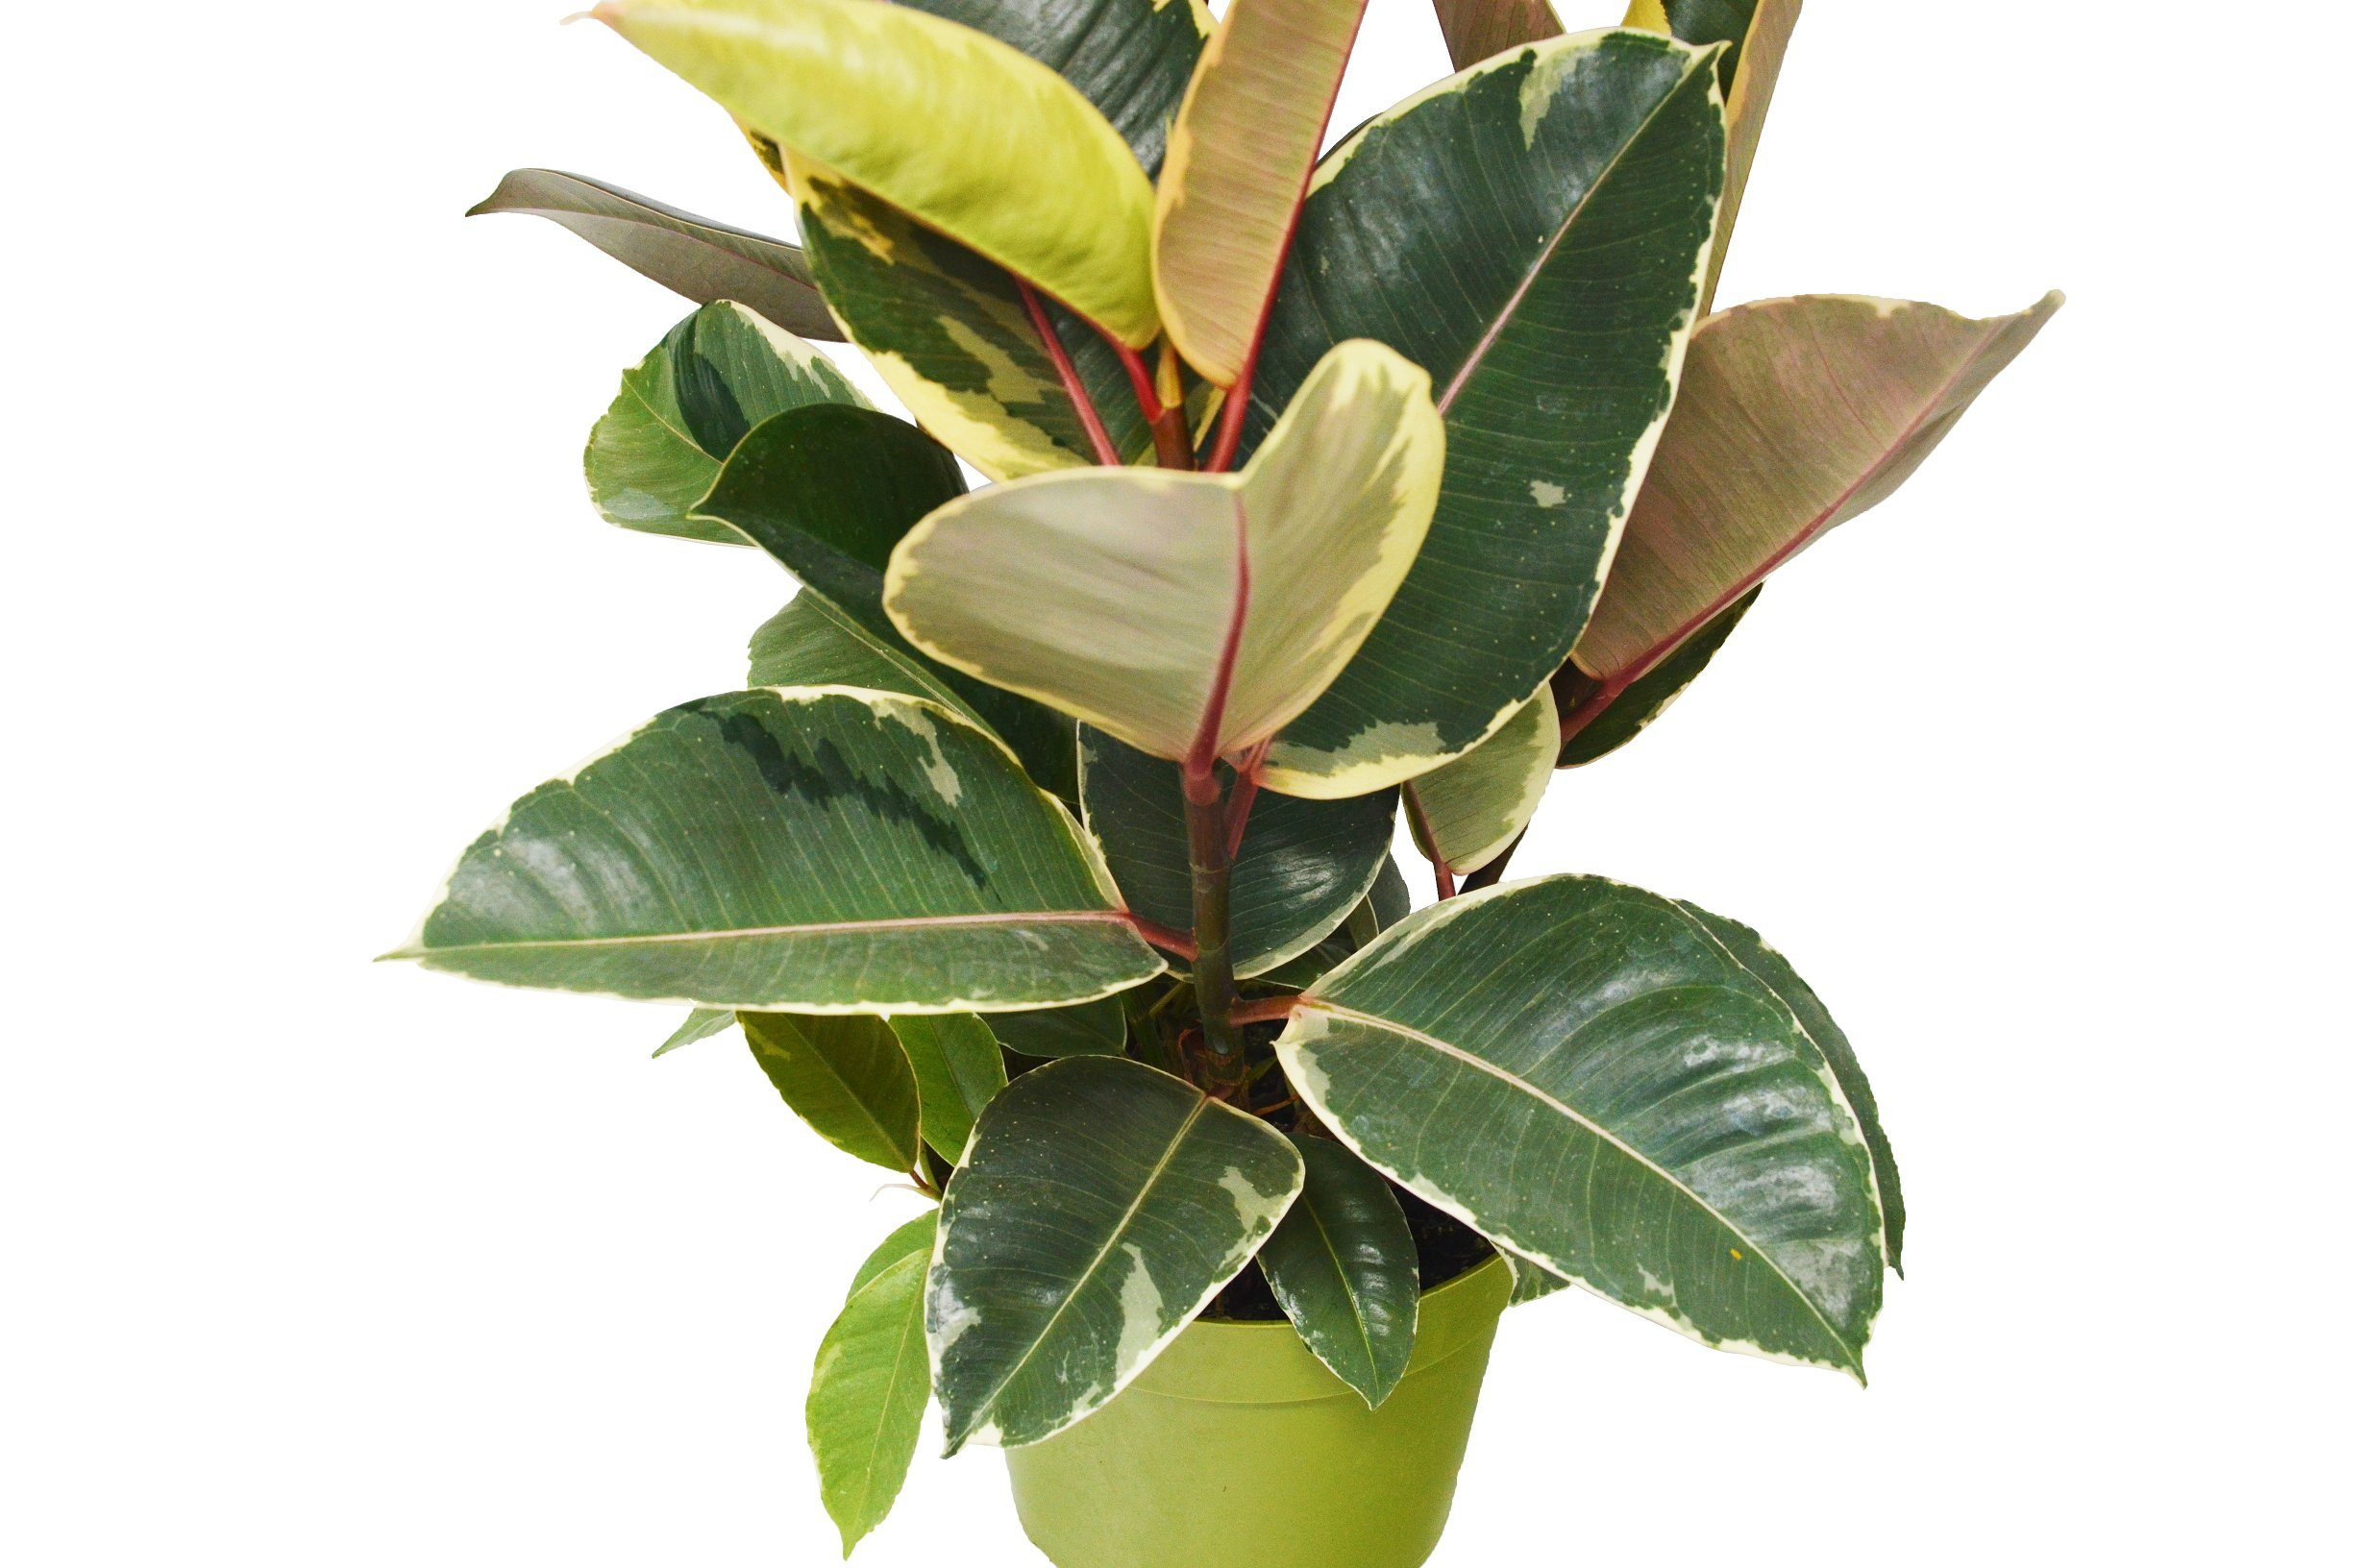 Ficus 'Tineke' Rubber Plant - In 6'' Pot/12 - 18'' Tall/Live Plant/FREE Care Guide/House Plant/EASY CARE by House Plant Shop